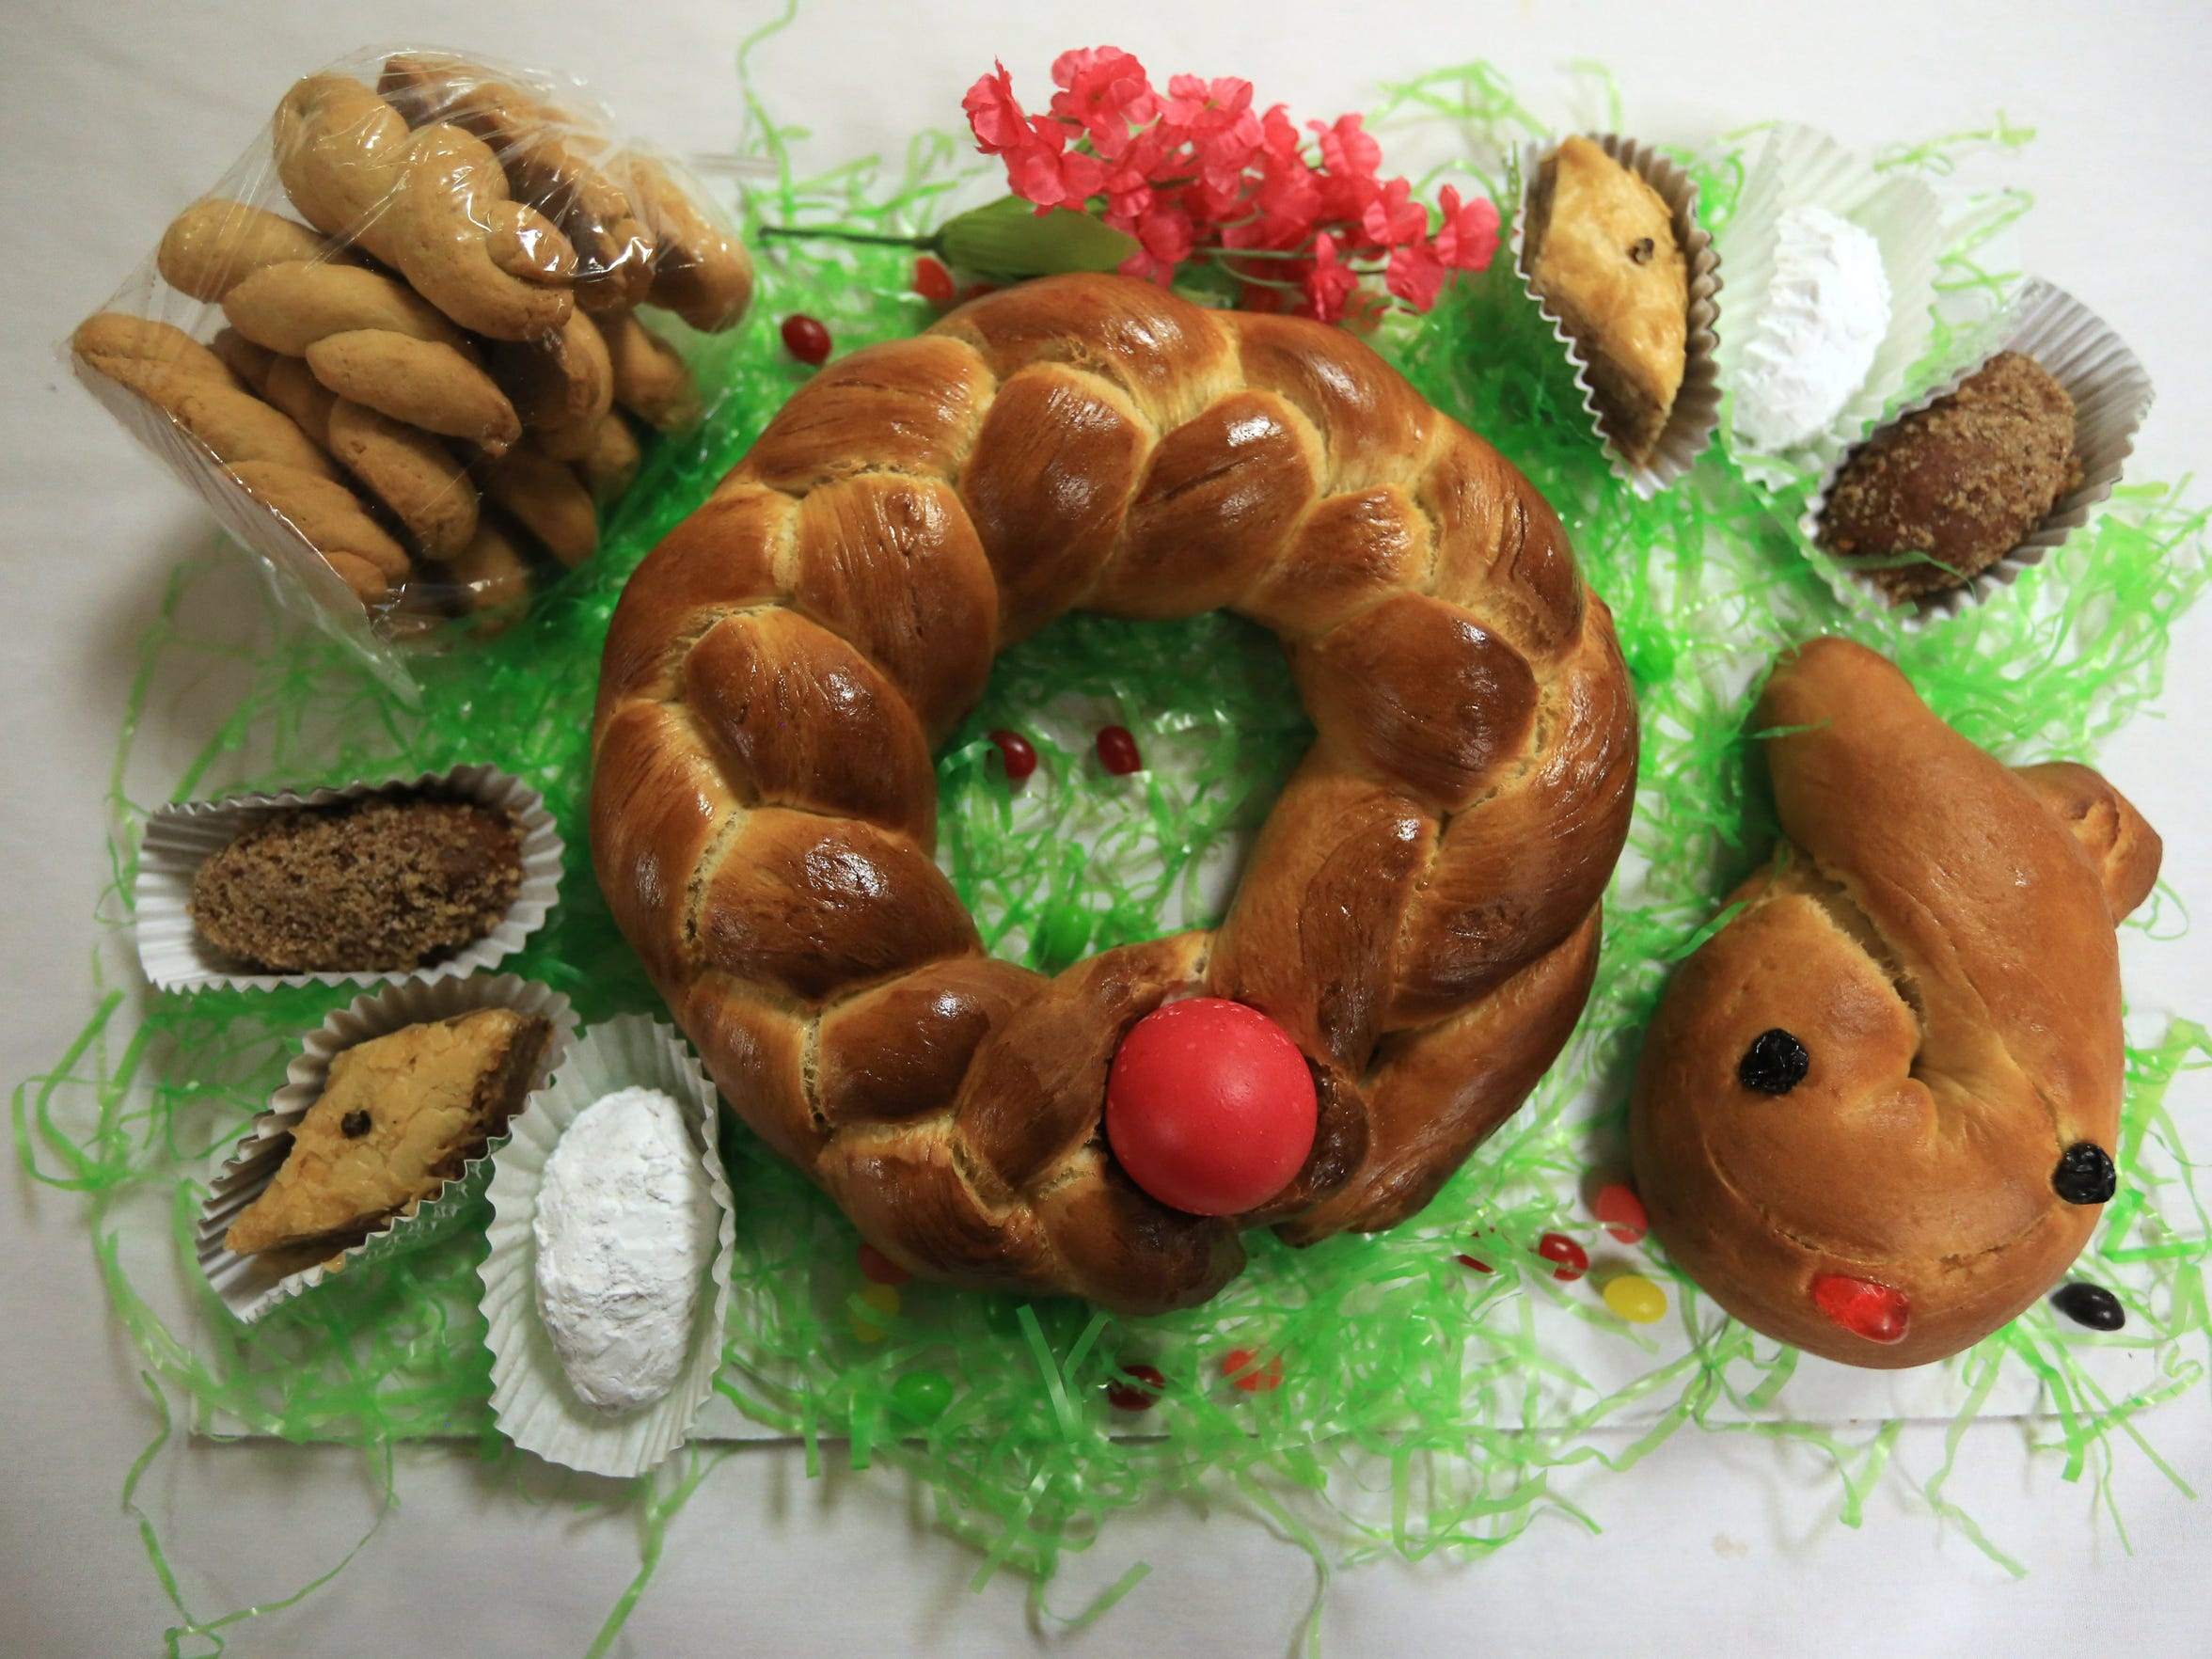 The annual Easter Bake Sale at the St. Nicholas Greek